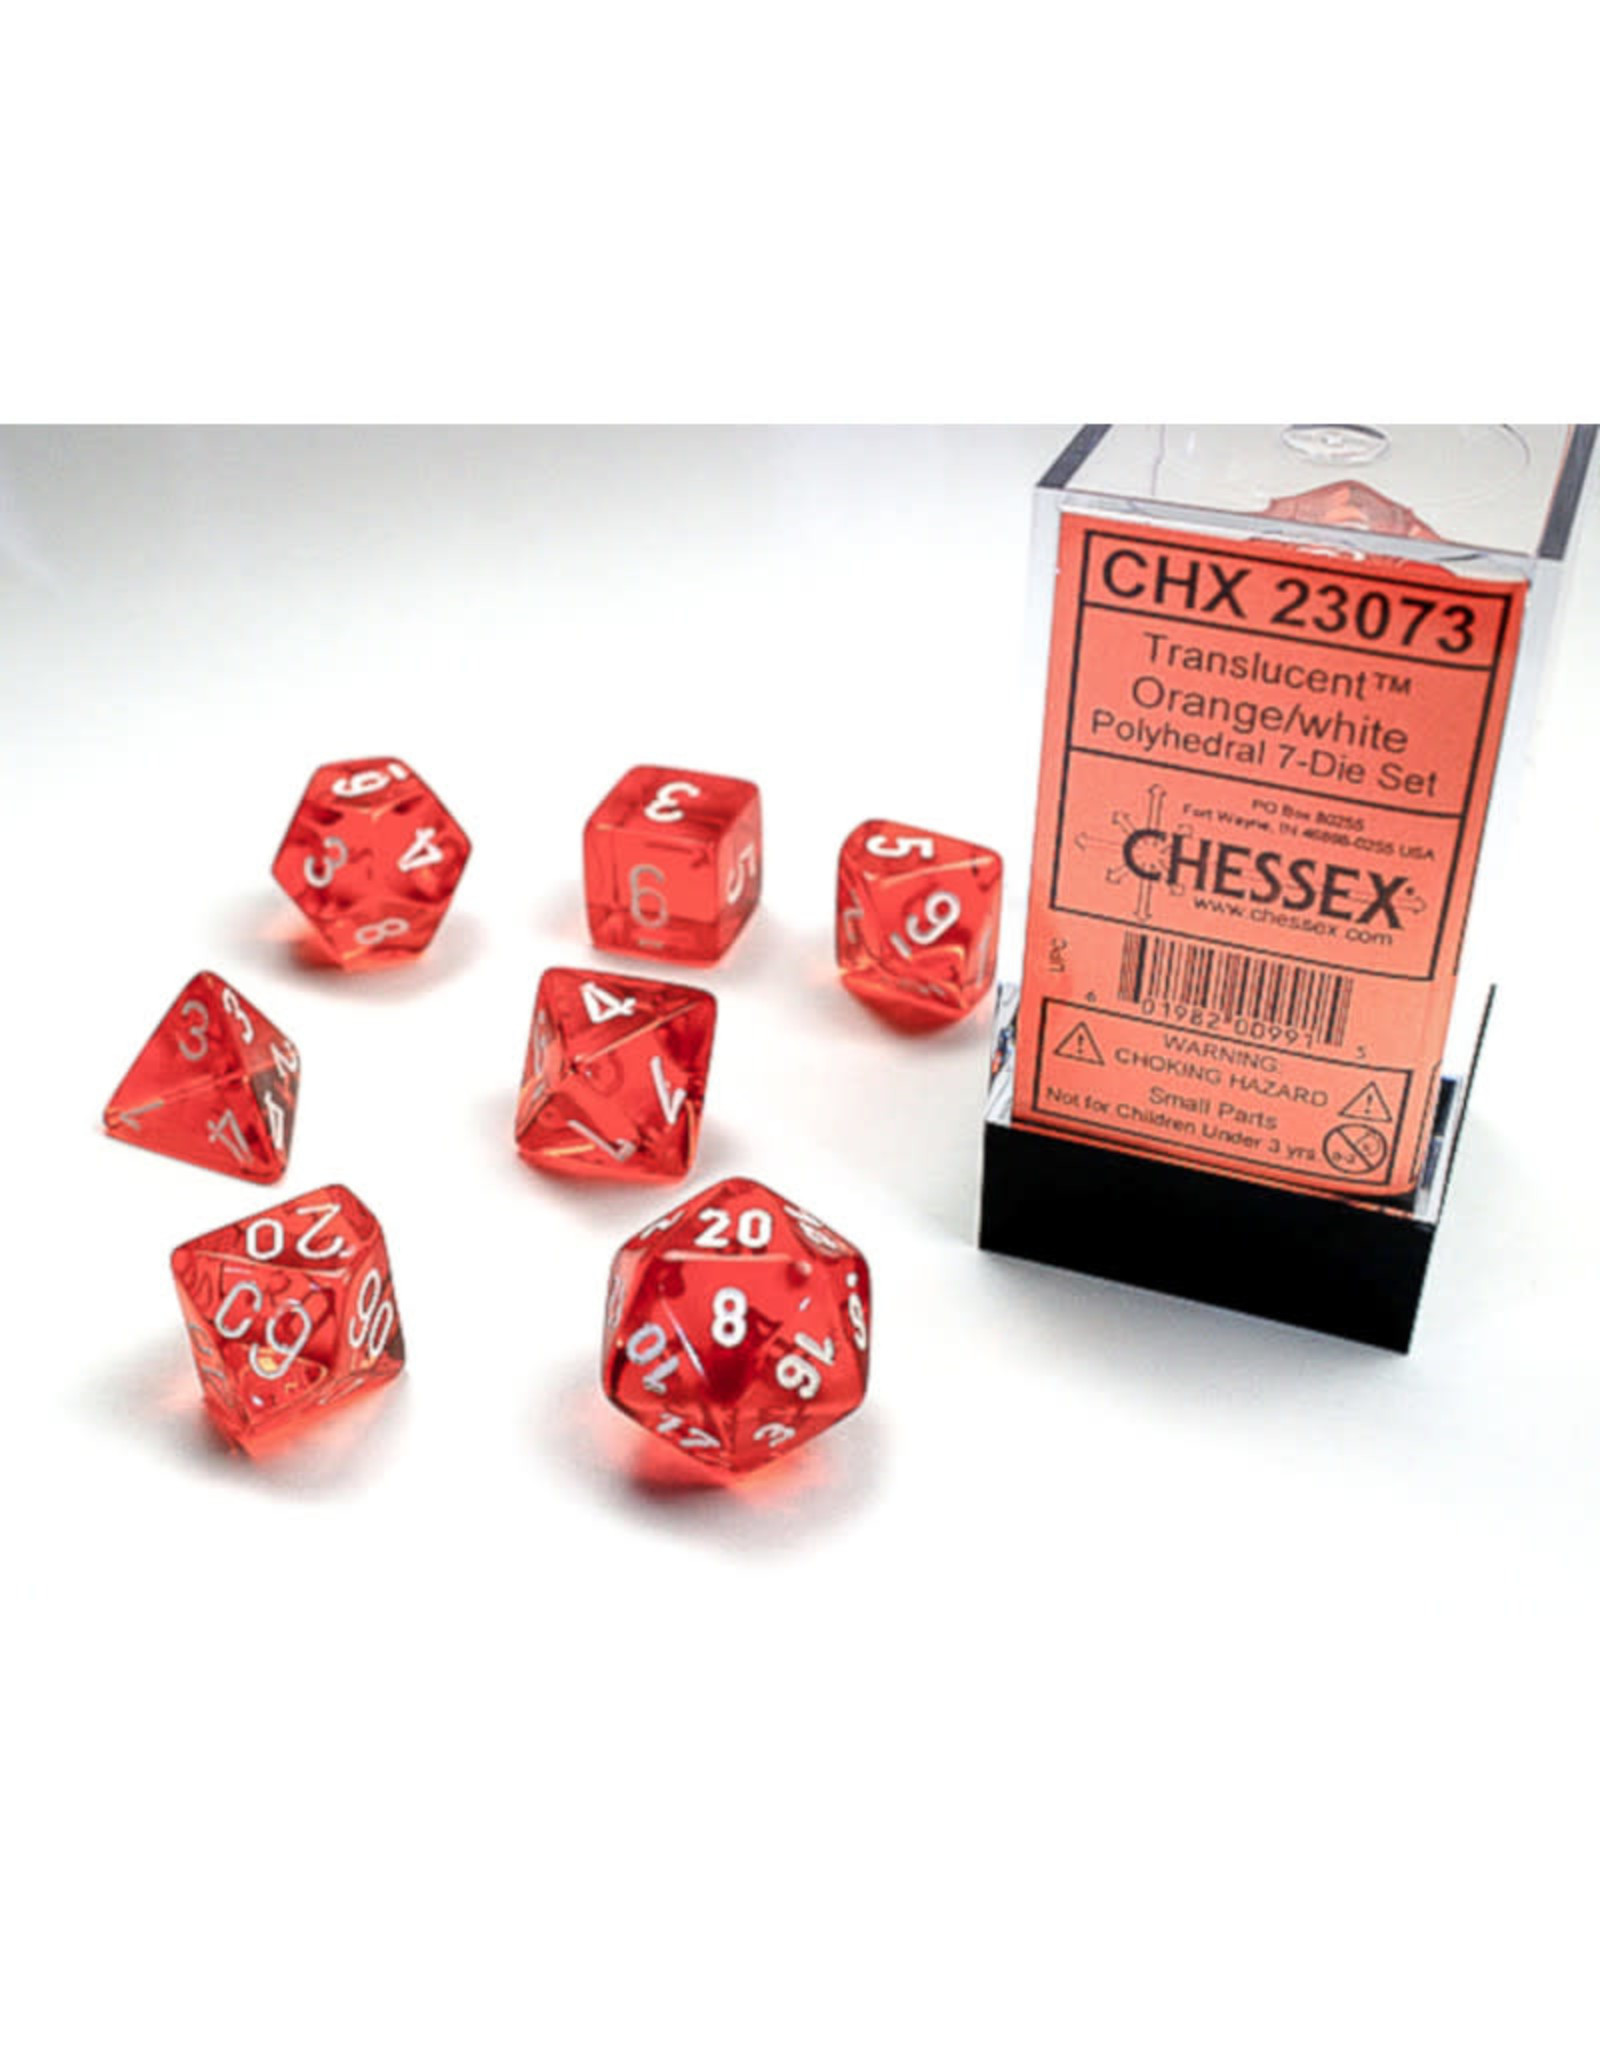 Chessex Polyhedral Dice Set: Translucent Orange/White (7)